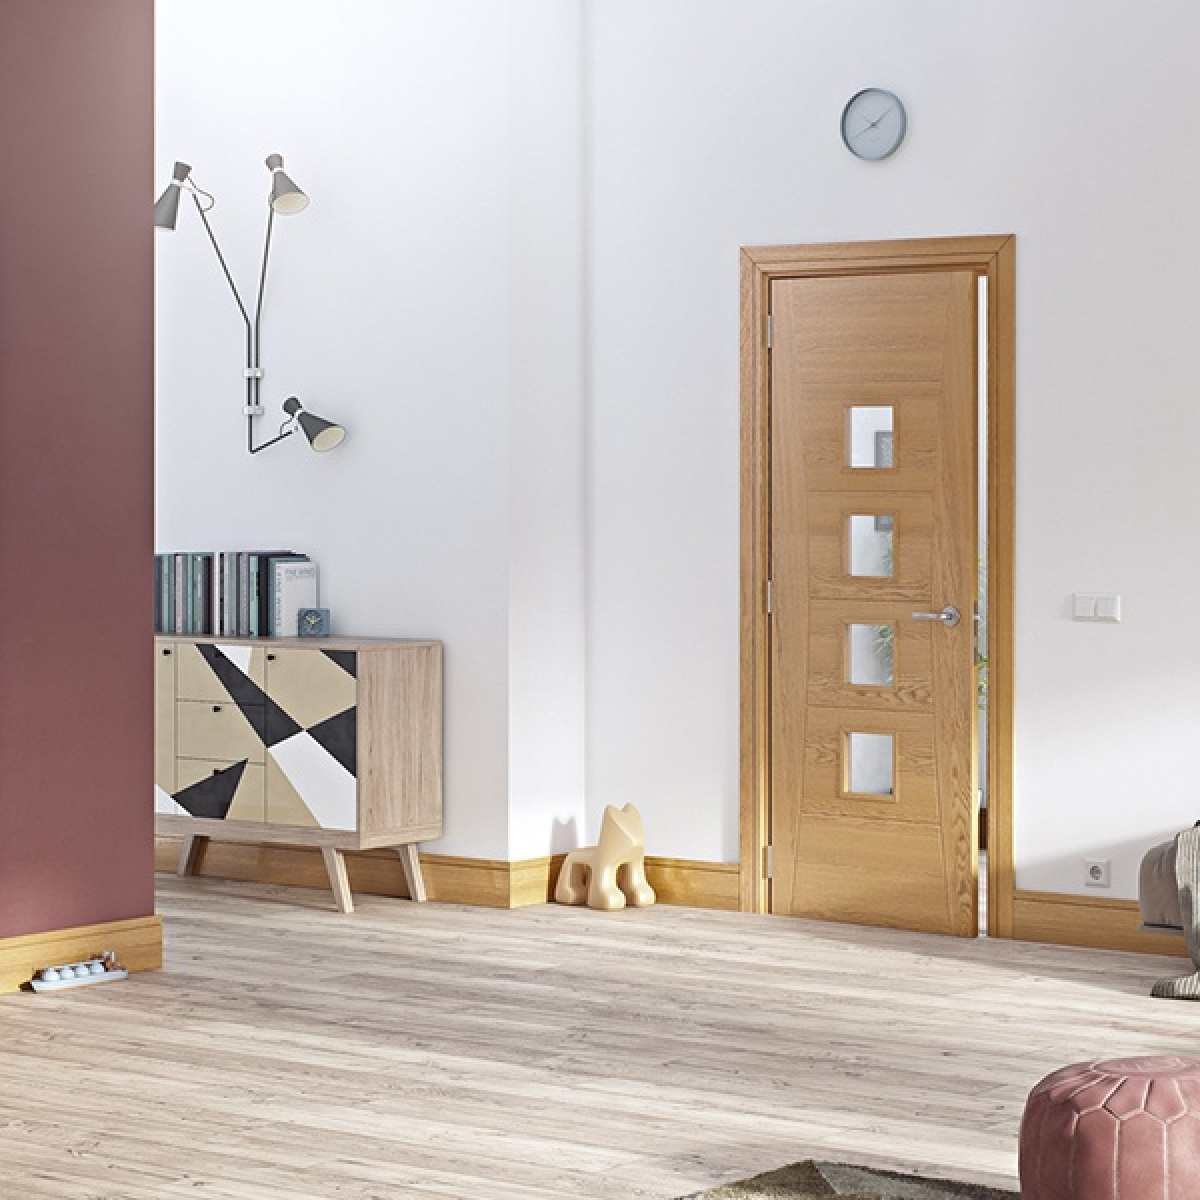 Pamplona oak glazed lifestyle websters Image by Websters Timber